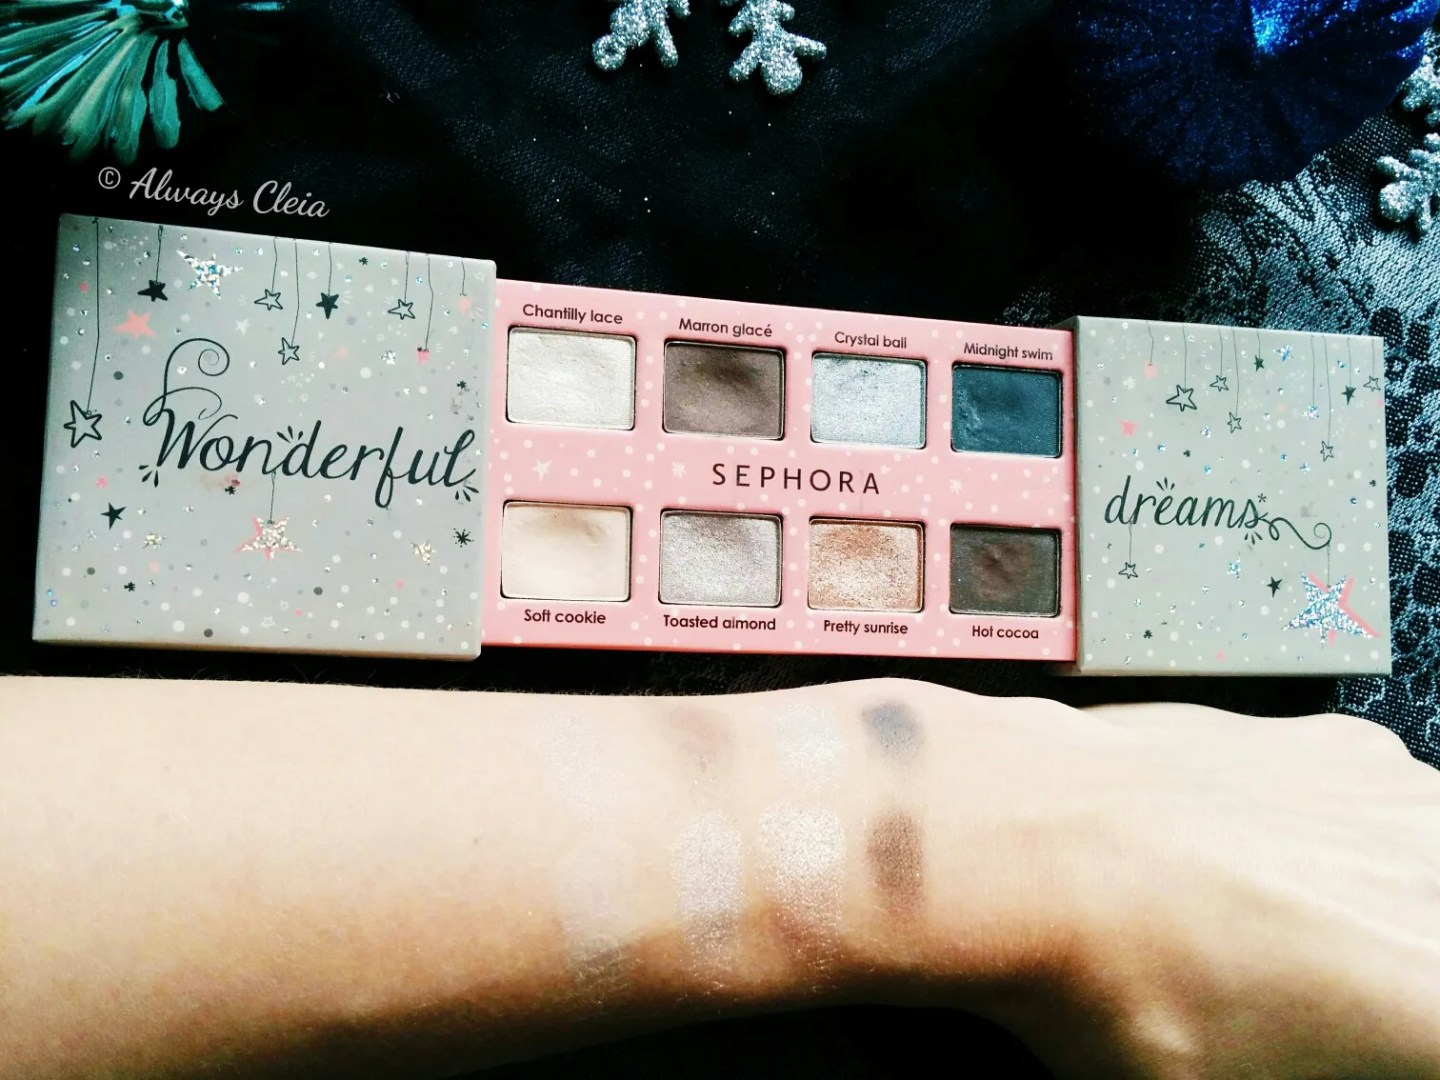 Sephora Wonderful Dreams Eyeshadow Palette